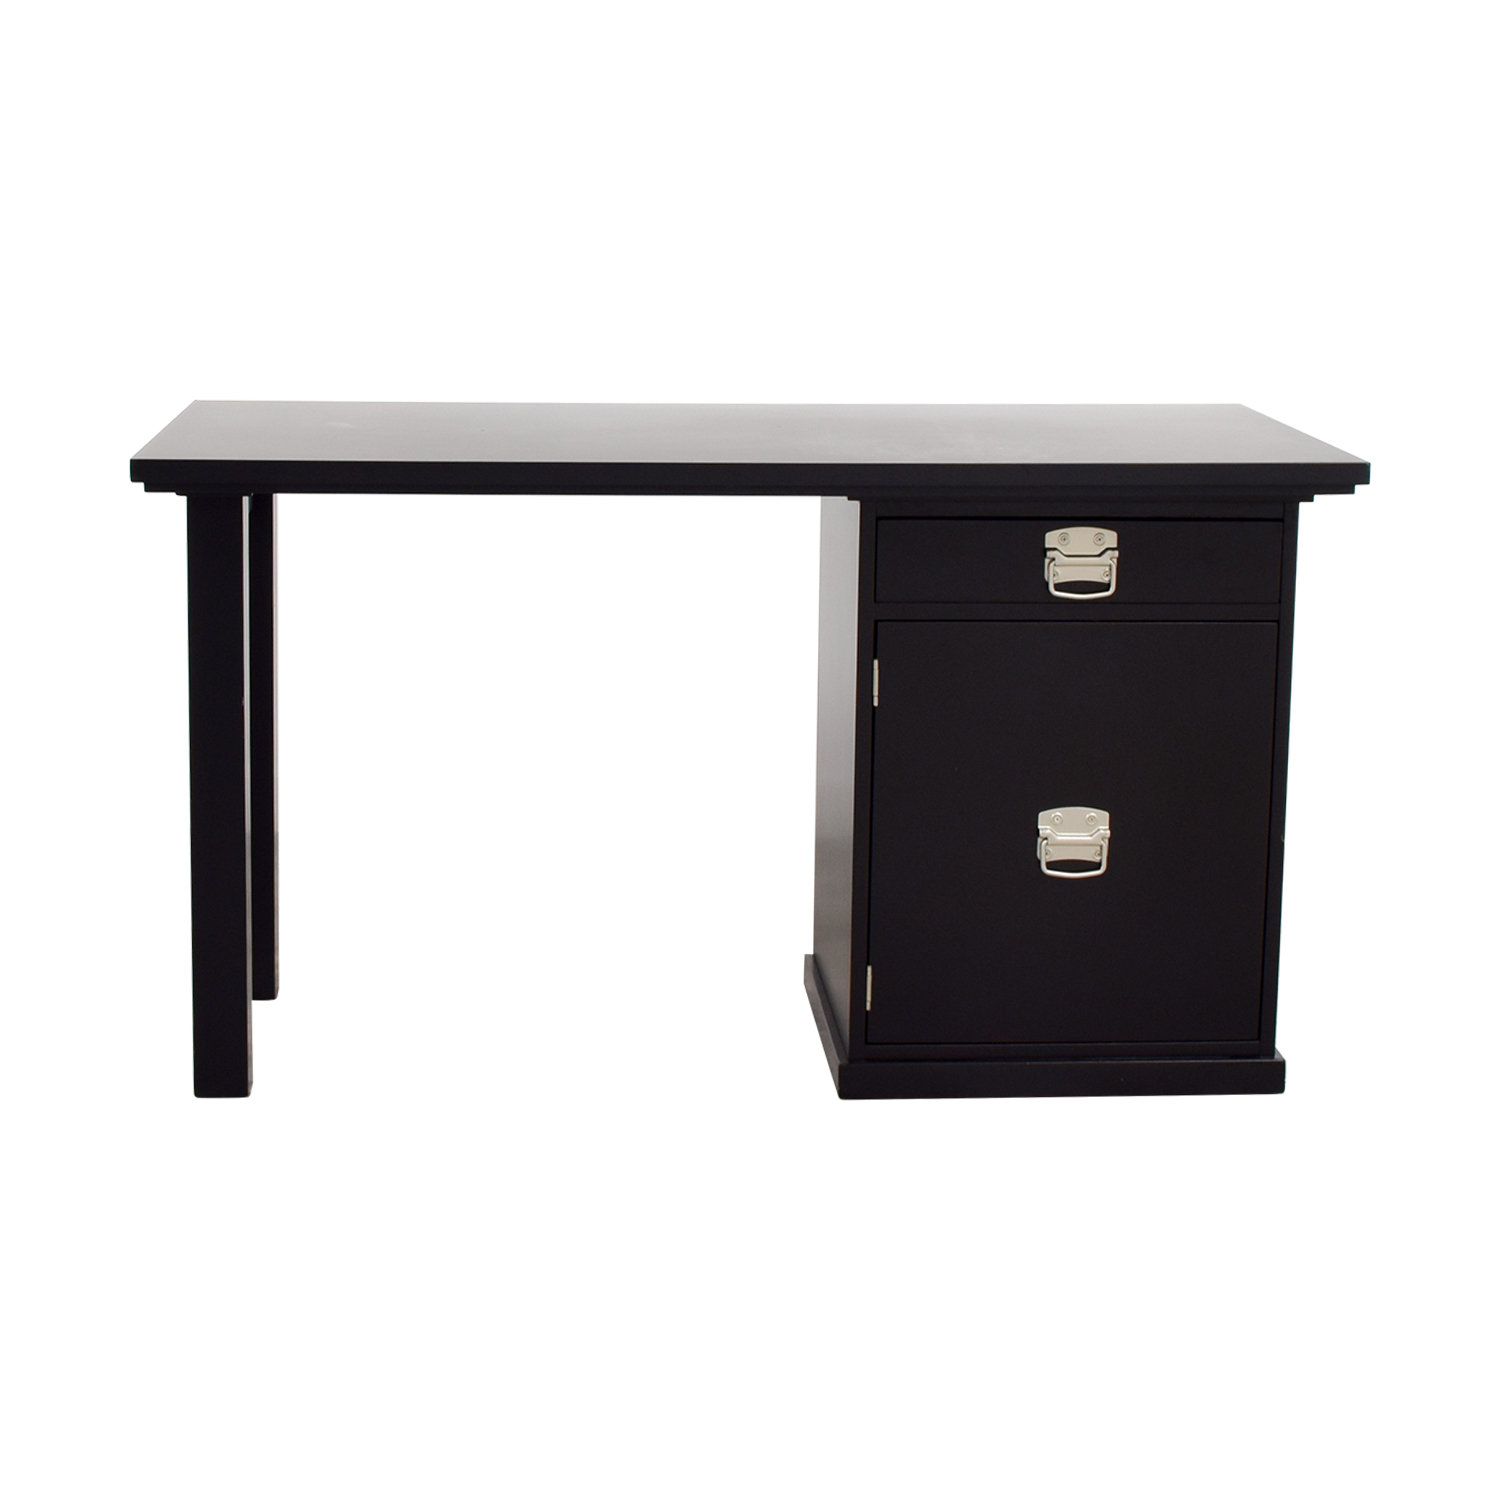 buy Pottery Barn Desk with File Cabinet Pottery Barn